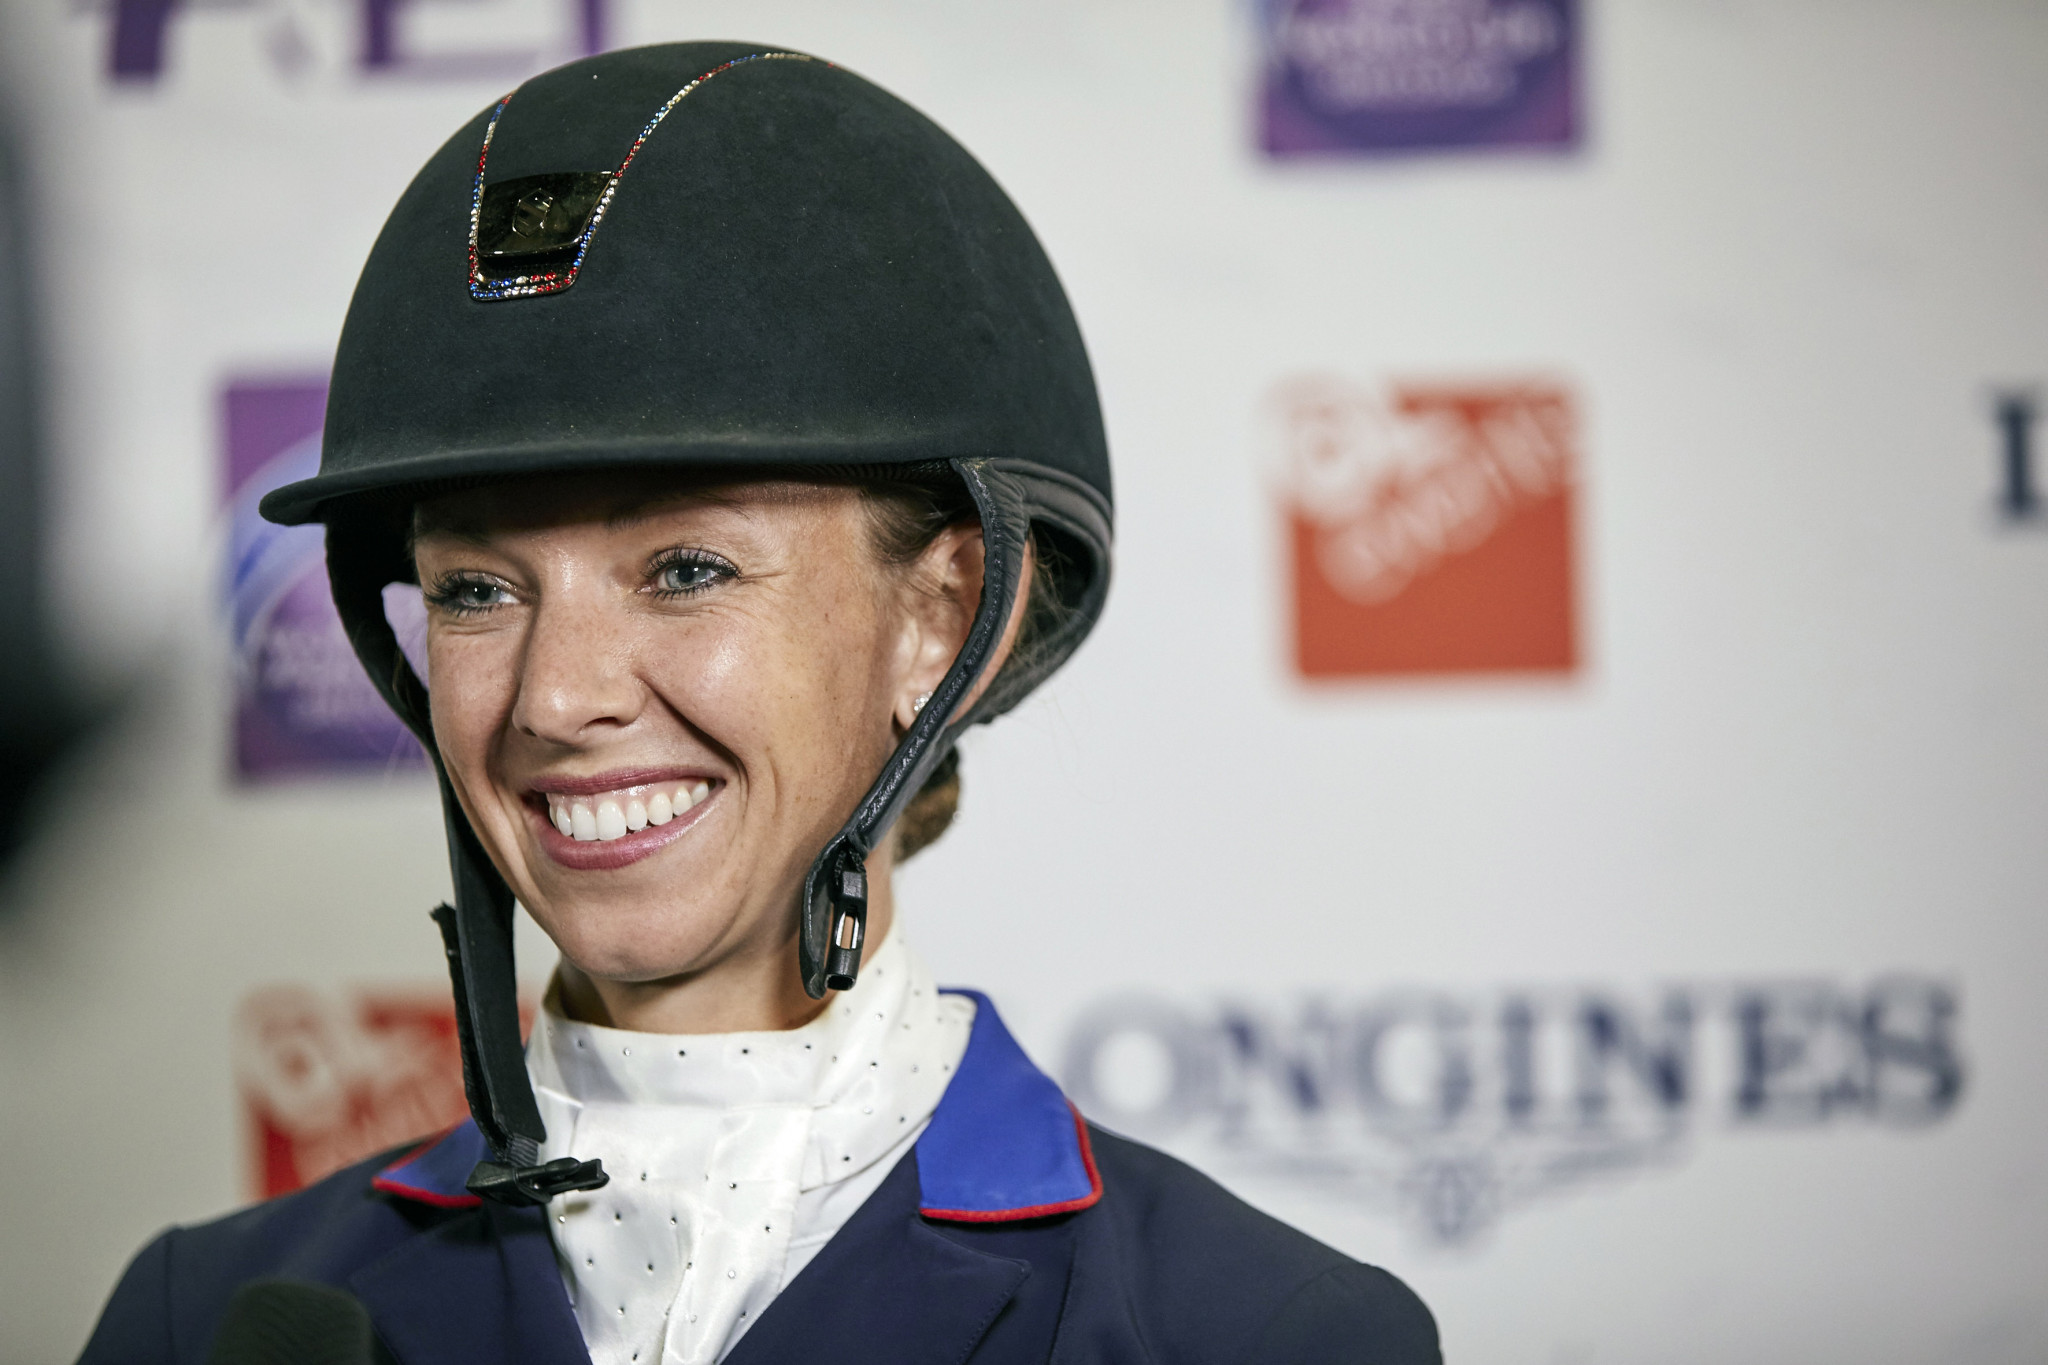 Graves gets her nose in front of Werth at halfway point of FEI World Cup Dressage Final in Paris